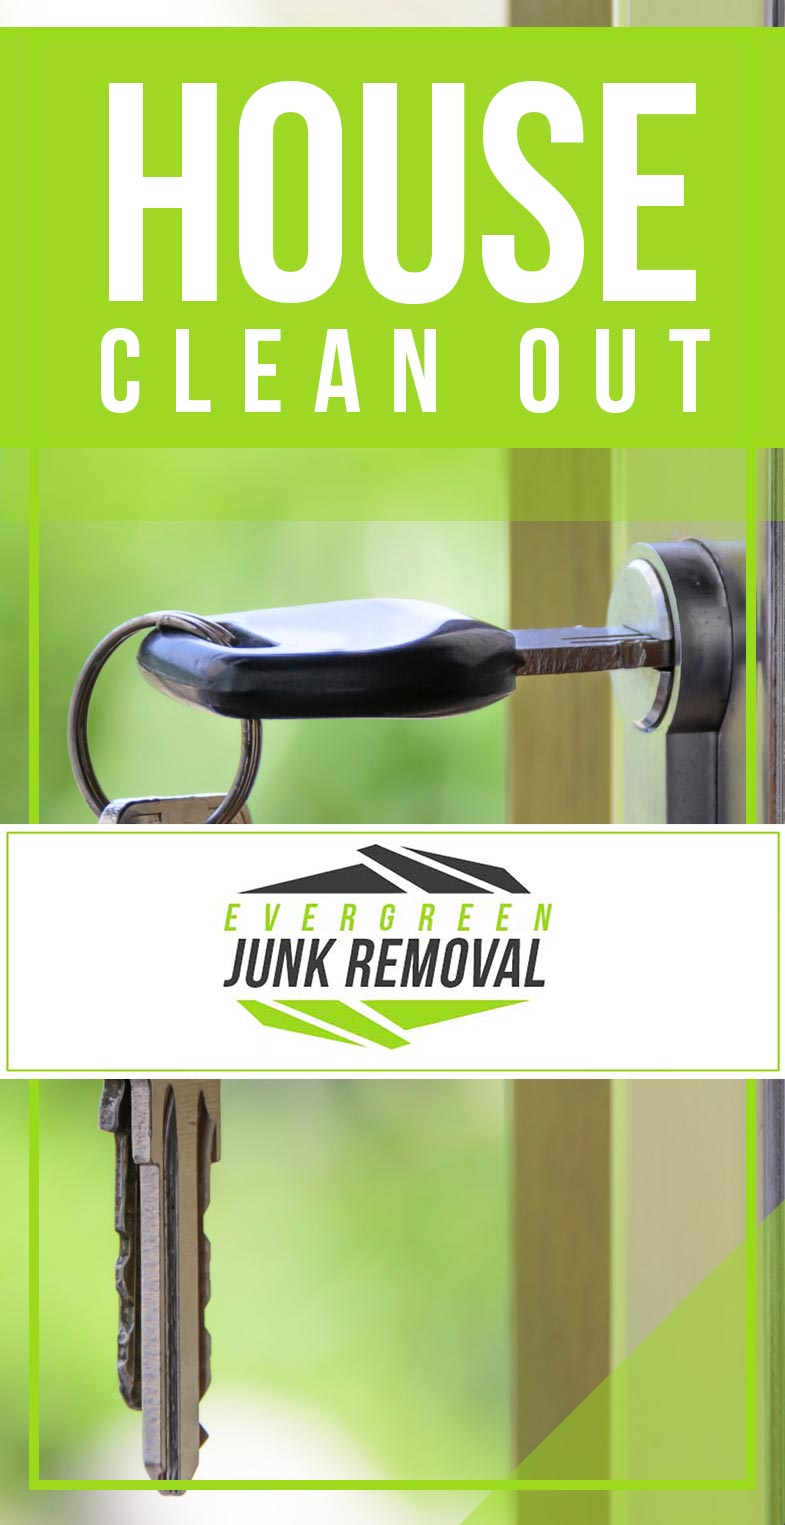 Junk Removal Lantana House Clean Out